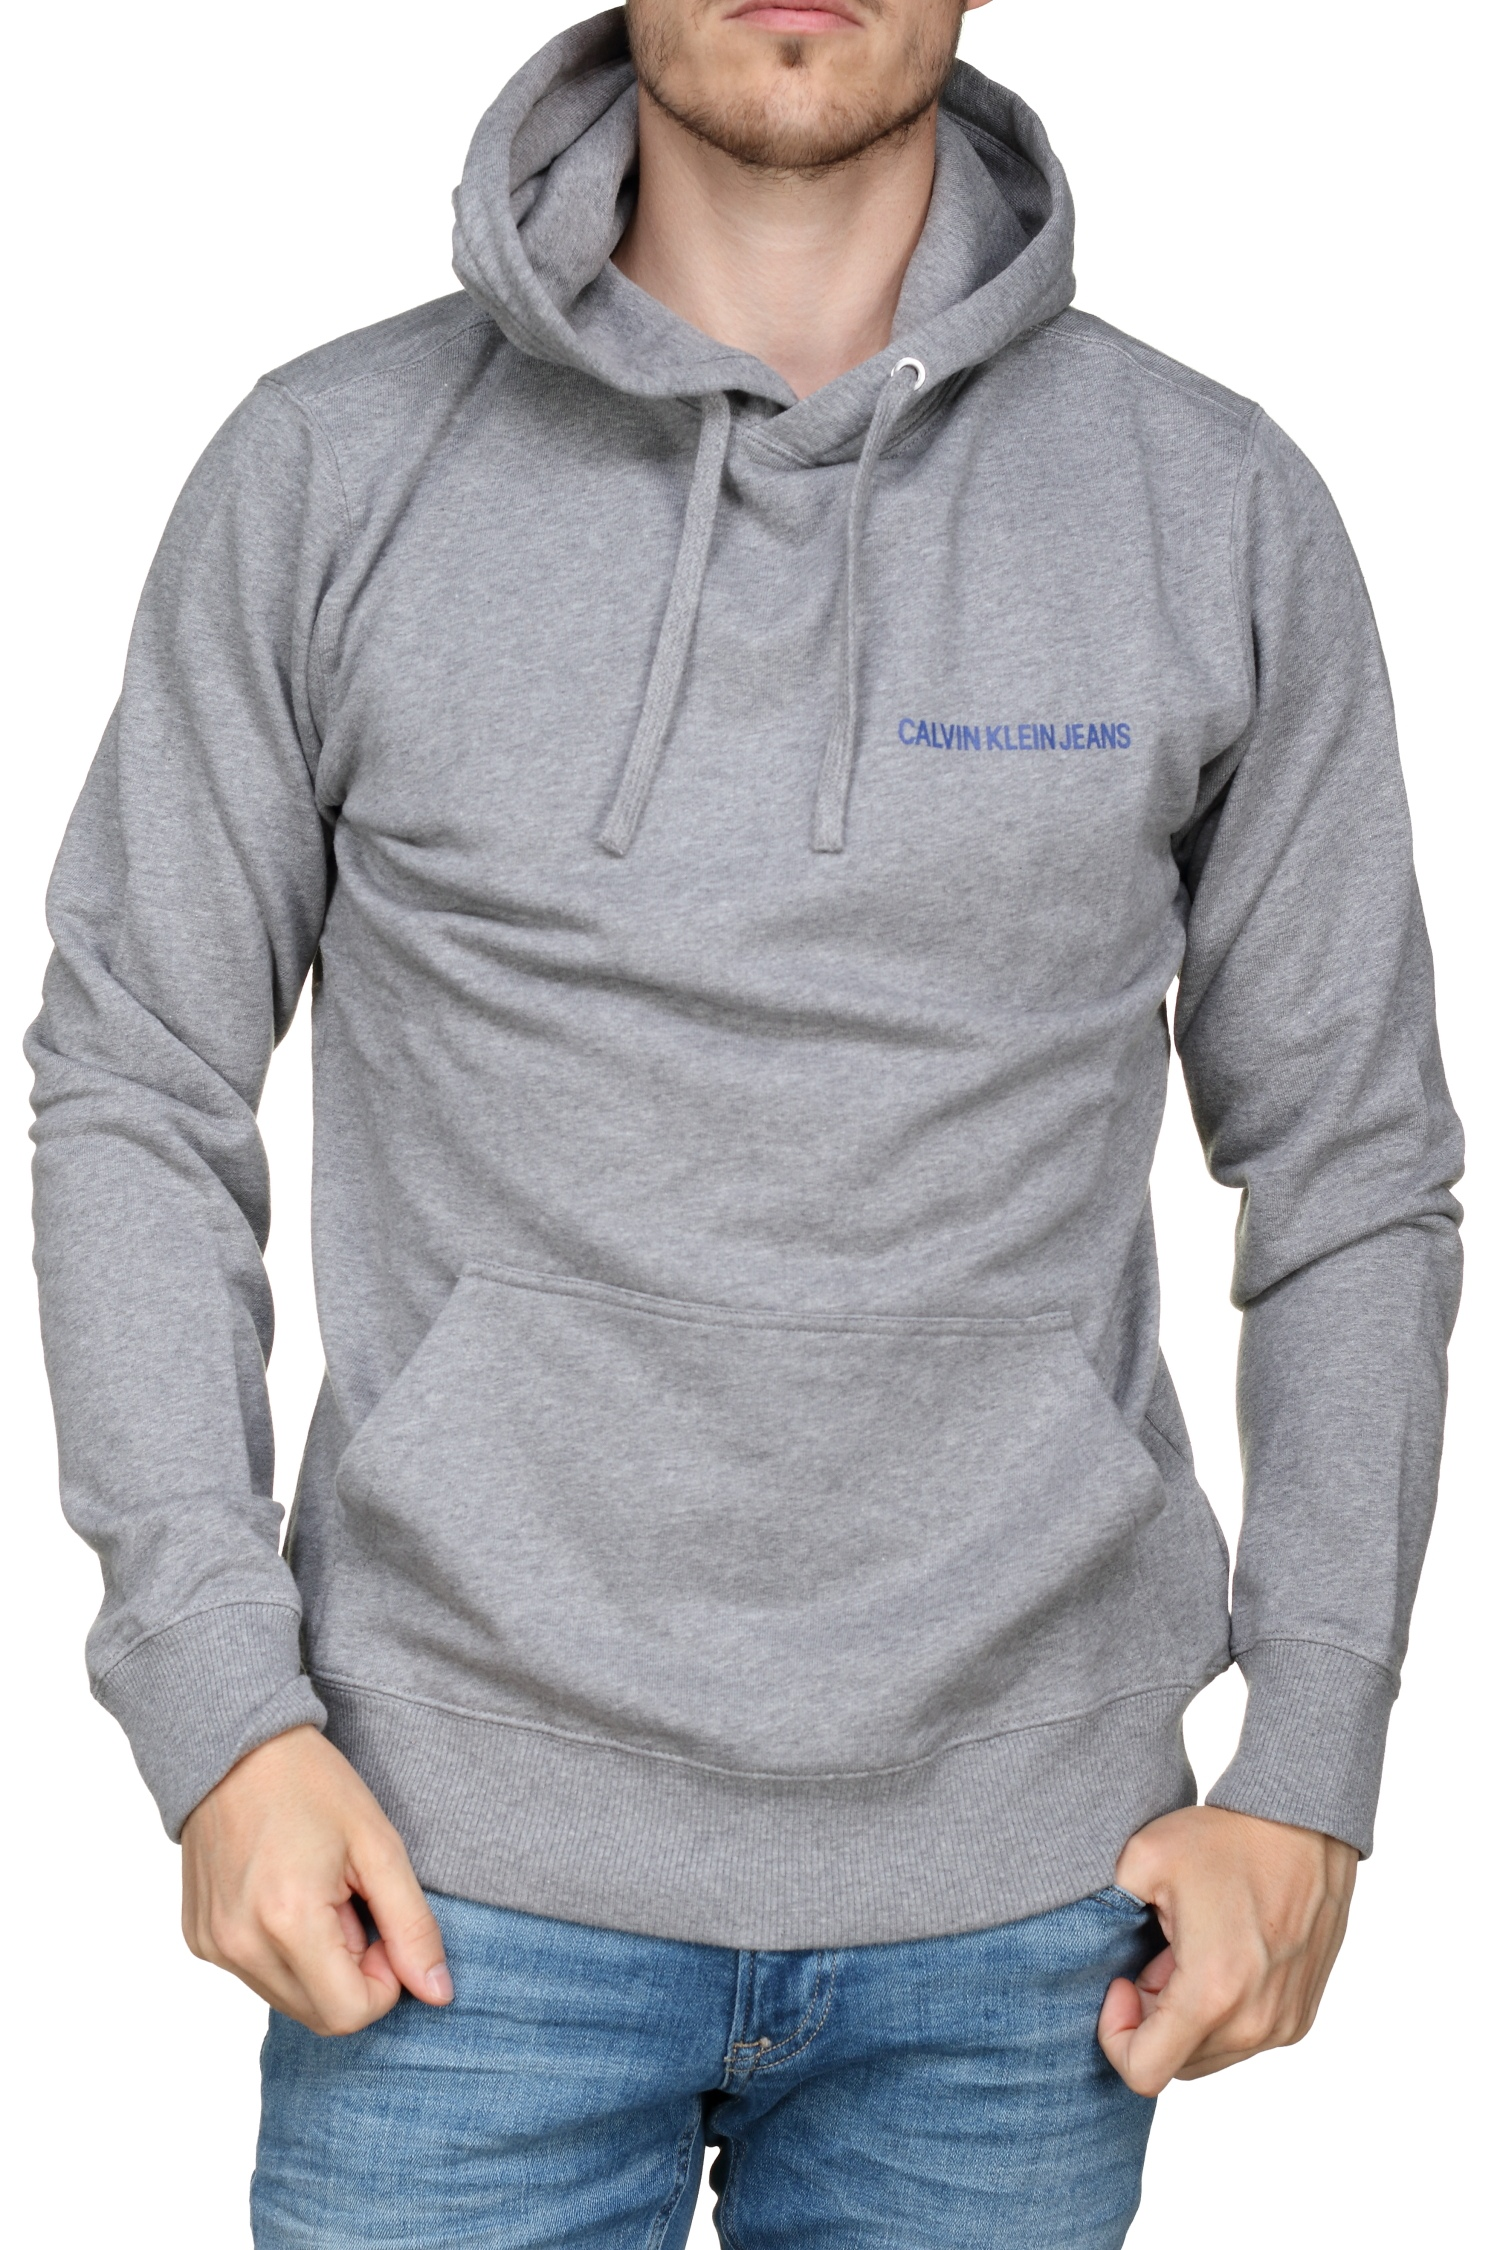 https://www.leadermode.com/175977/calvin-klein-j30j313700-small-instit-p2d-grey-heather.jpg